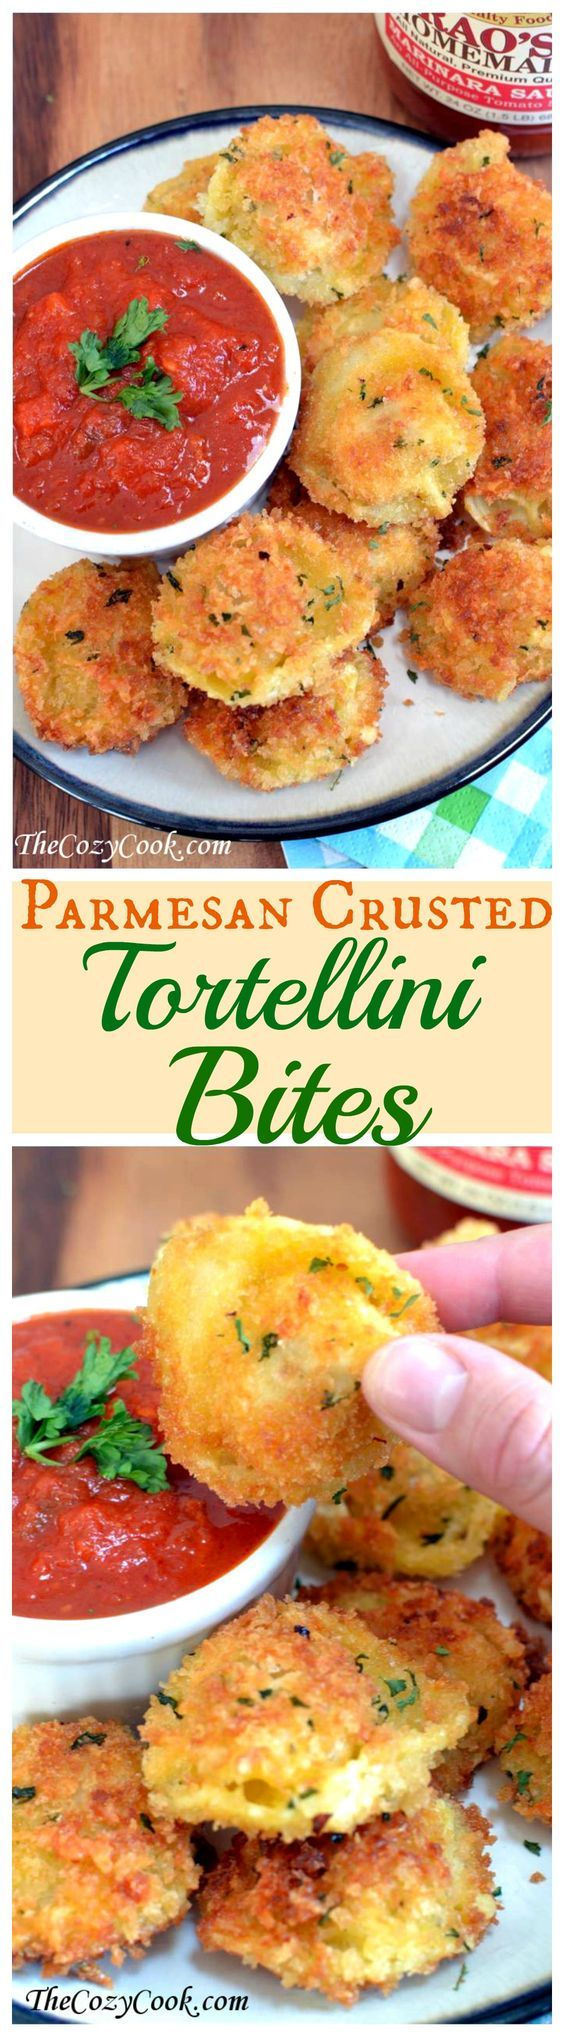 Parmesan Tortellini Bites Finger Foods Recipe via the cozy cook - The Best Easy Party Appetizers and Finger Foods Recipes - Quick family friendly snacks for Holidays, Tailgating and Super Bowl Parties! #horsdoeuvres #appetizers #fingerfoods #tapas #partyfood #christmaspartyfood #newyearsevepartyfood #newyearseve #tailgating #superbowl #easyappetizers